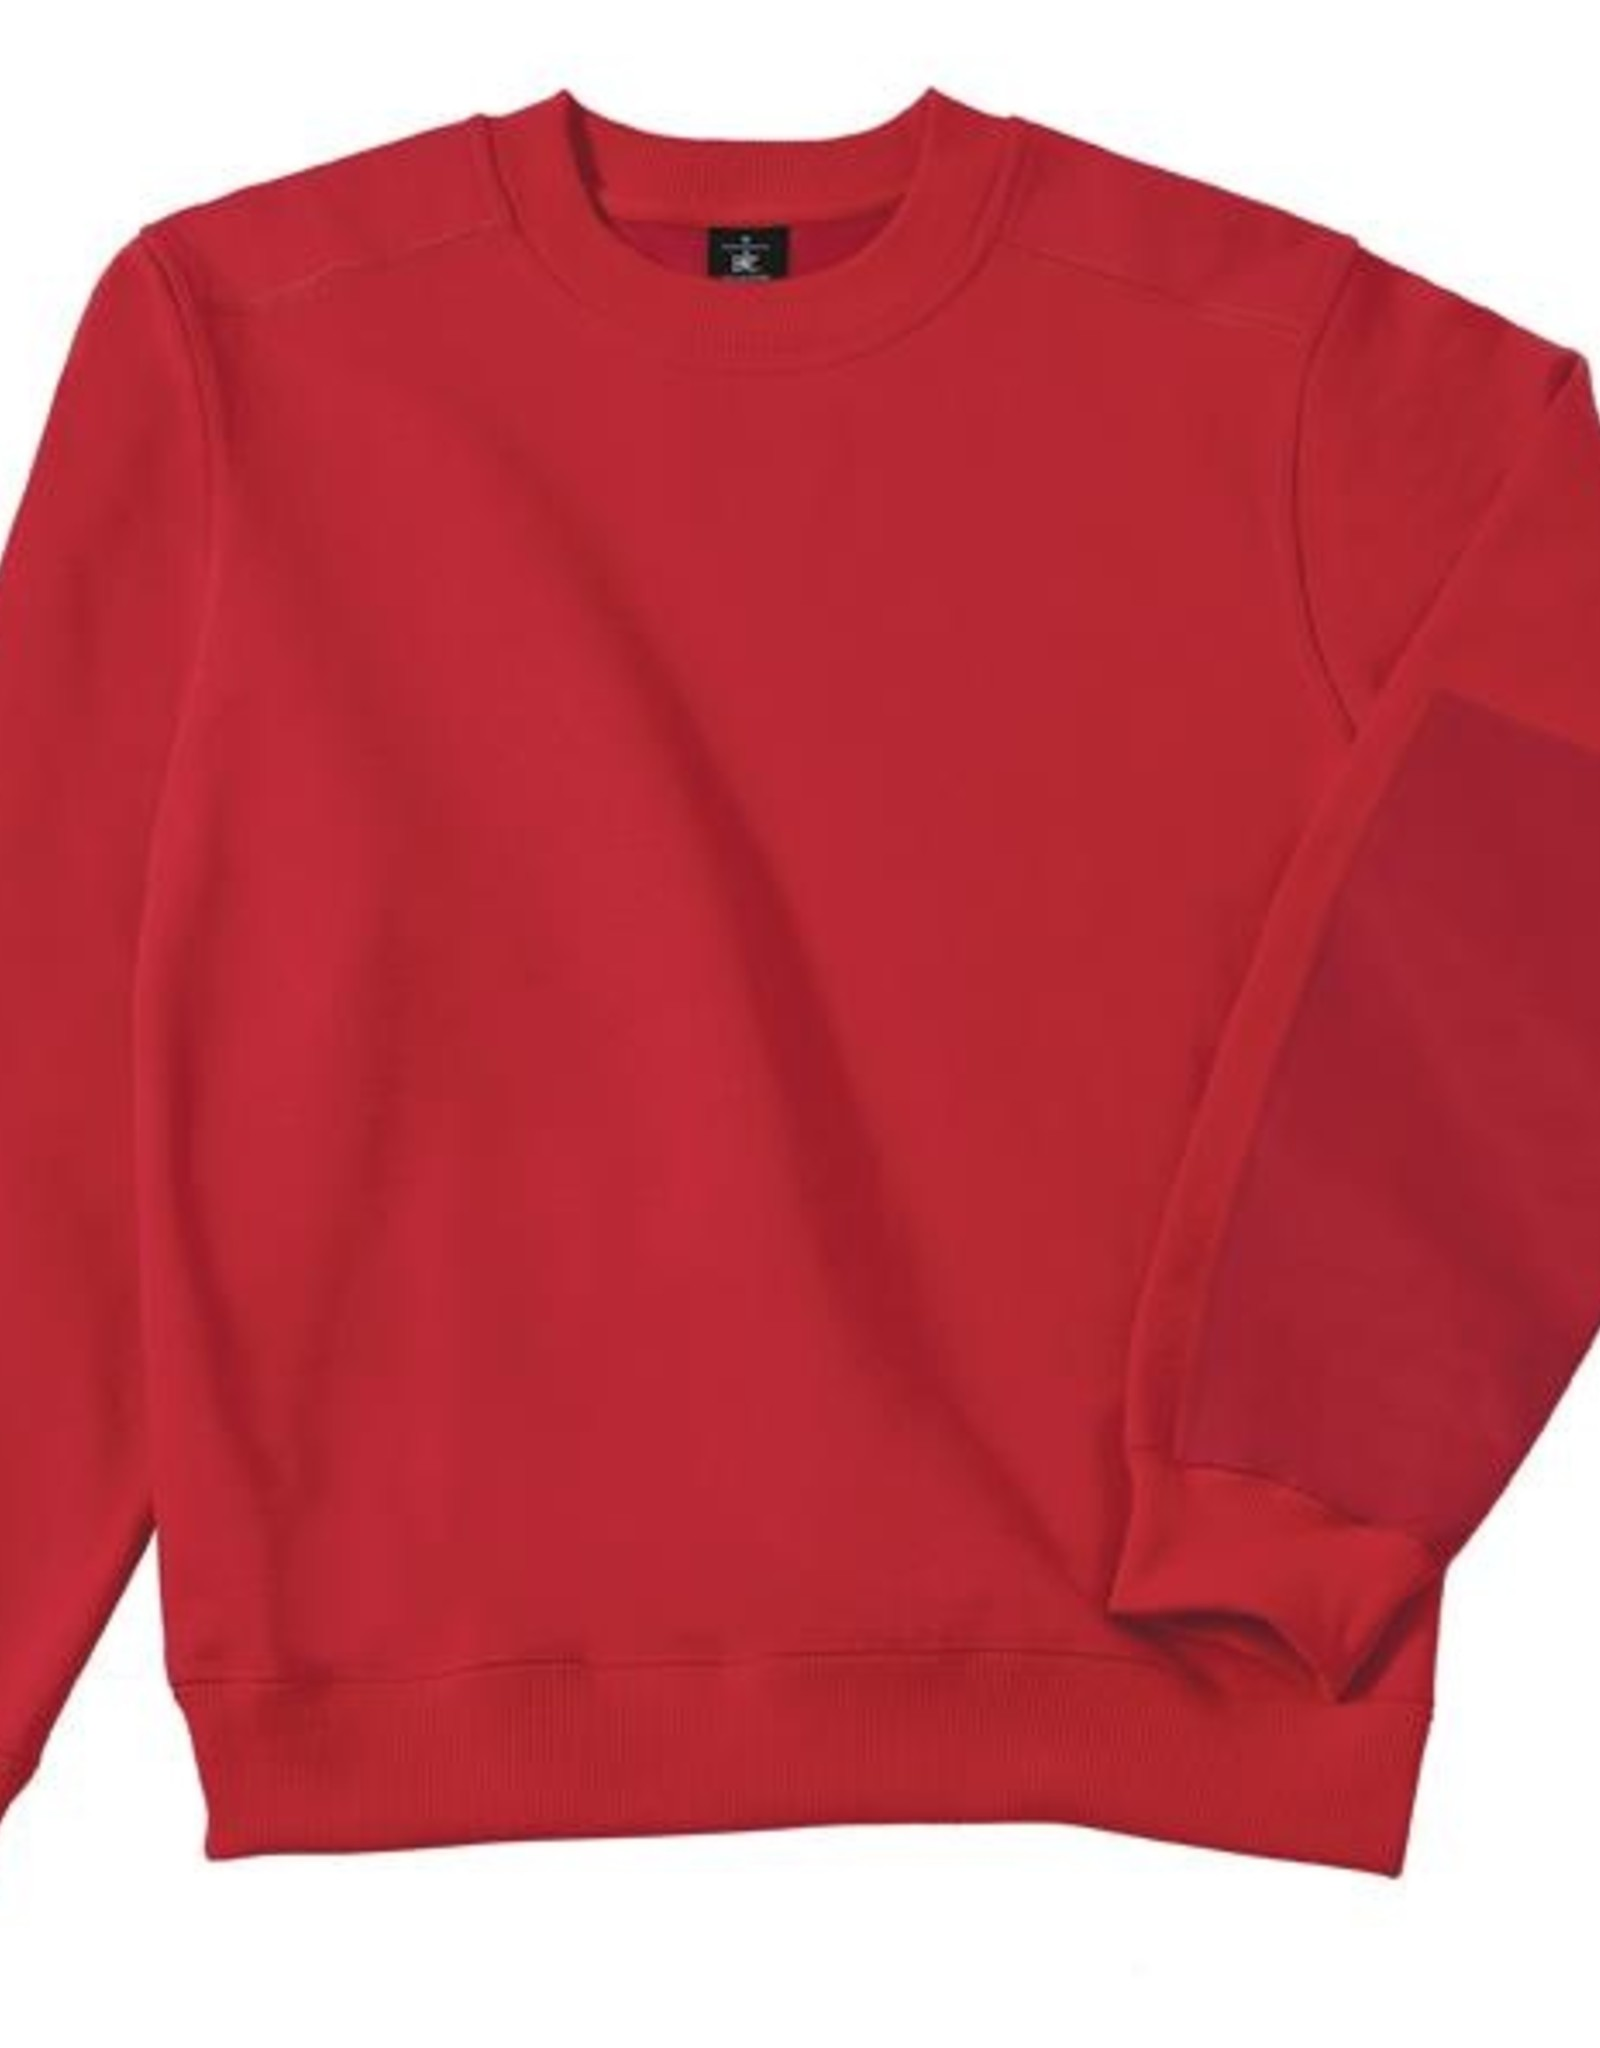 B&C Workwear set-in SWEATER rood